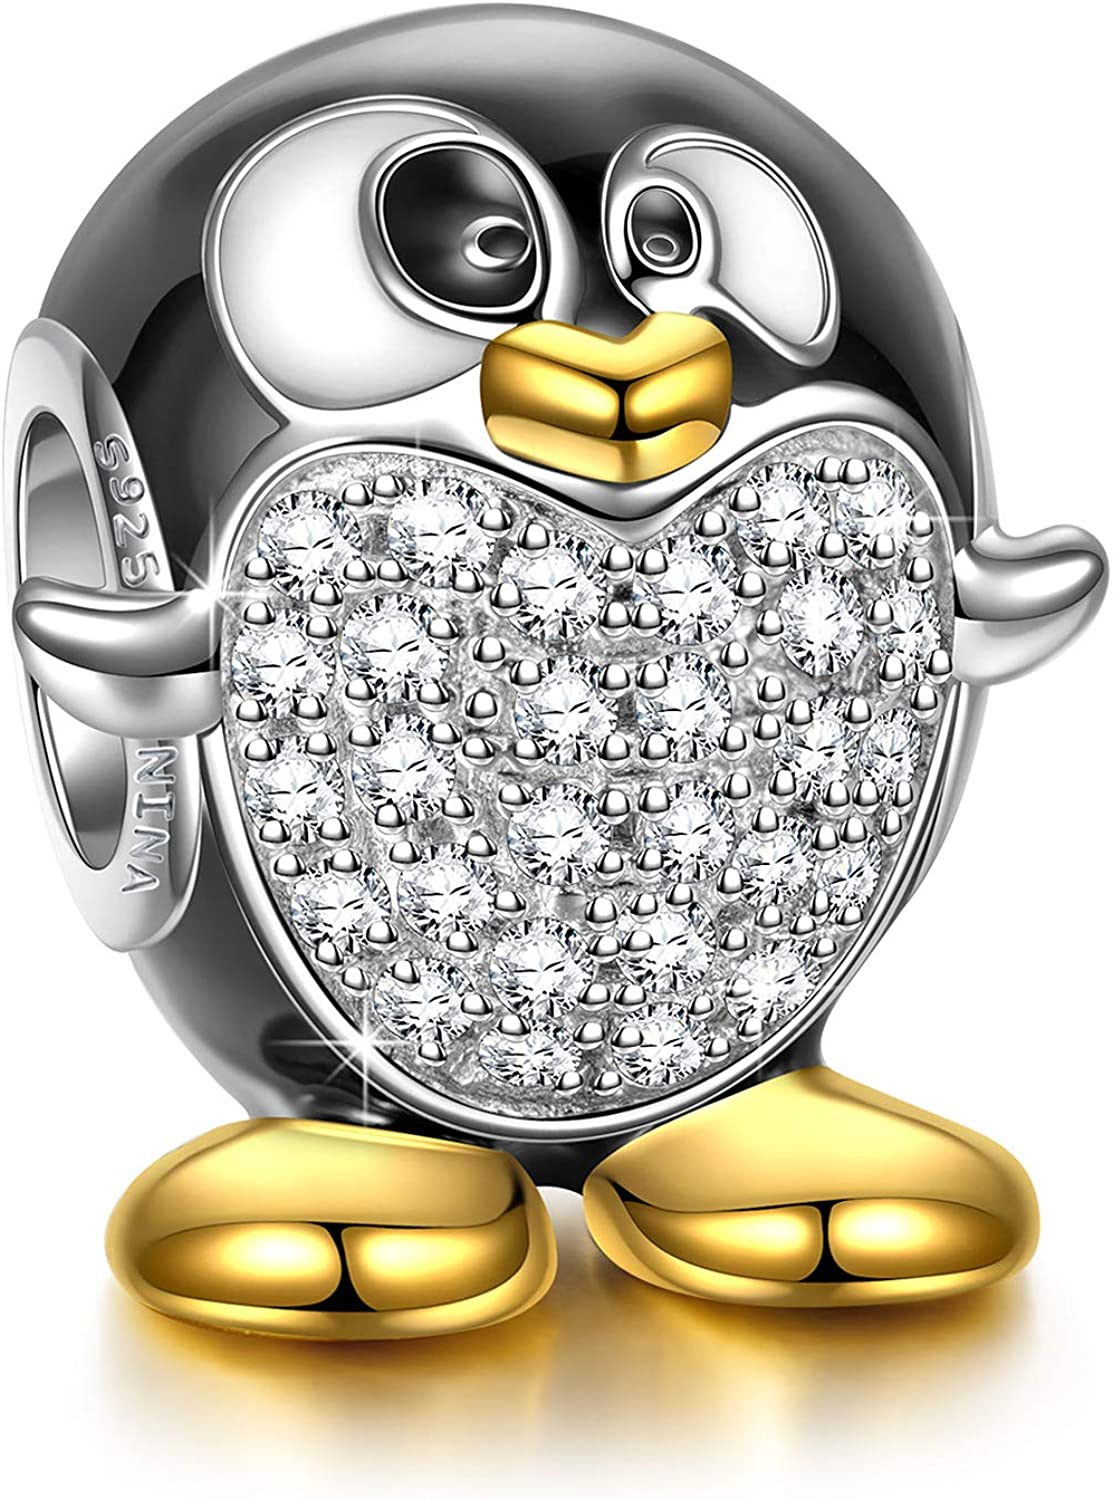 NINAQUEEN 925 Sterling Silver Penguin Gold Plated Bracelet Bead Charms Animal Fever Collocation with 5A Cubic Zirconia Fit Pandora European Bracelets